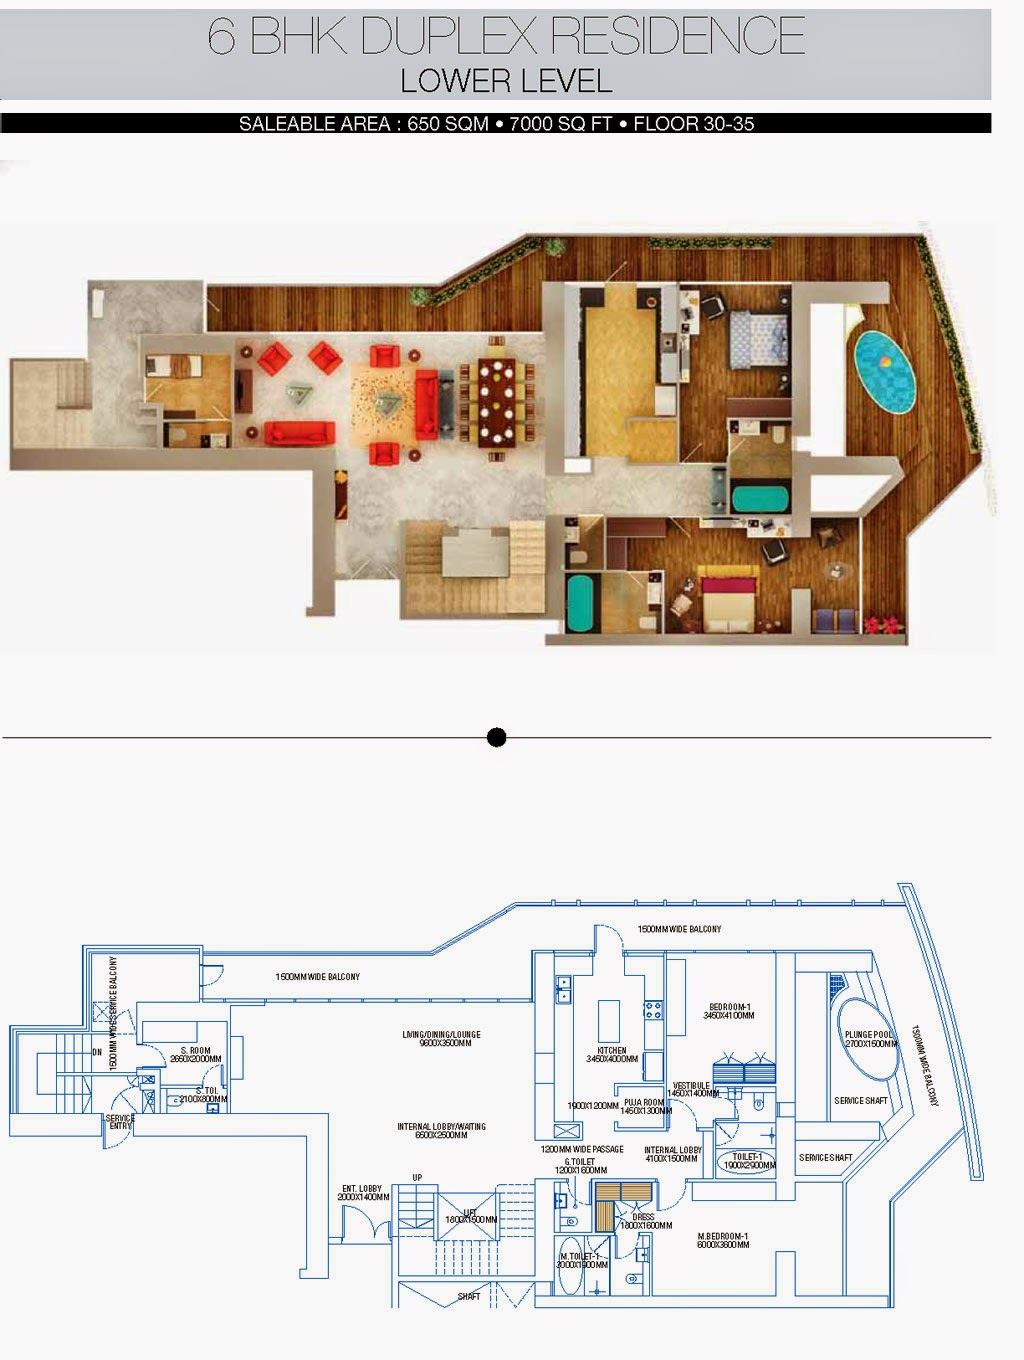 BRYS BUZZ :: Floor Plans 6 BHK Duplex Residence Lower level